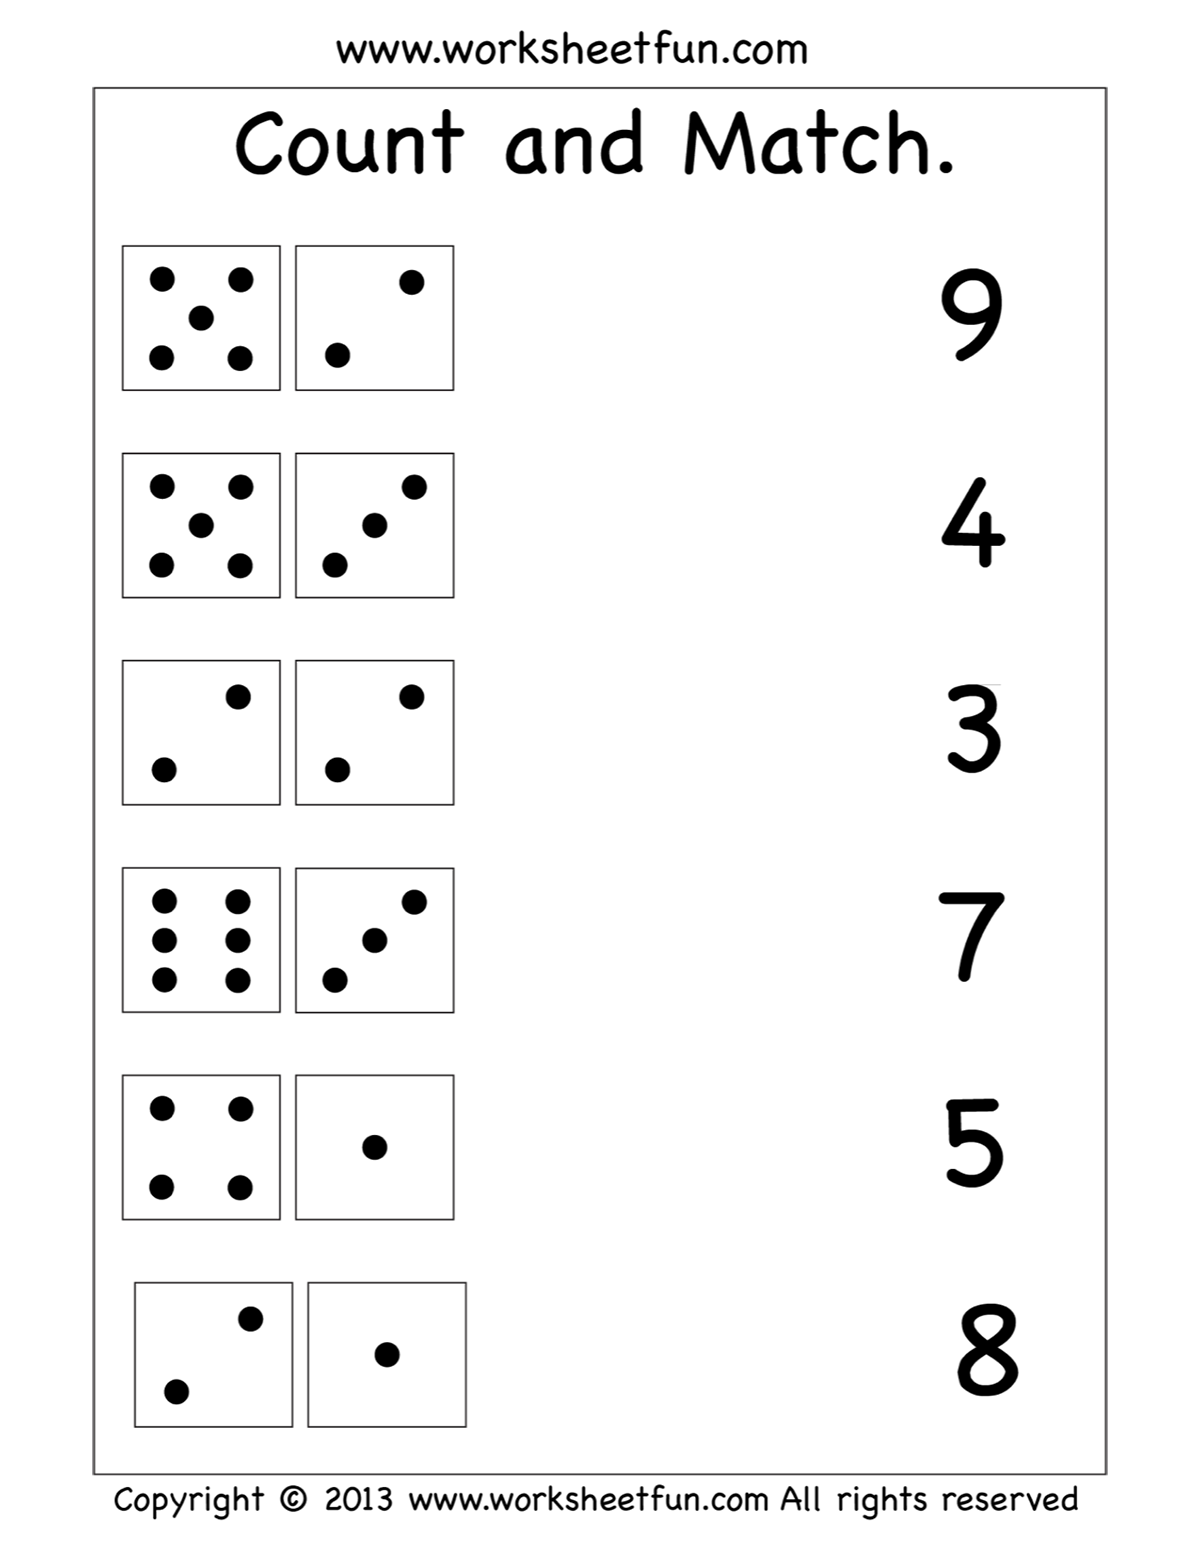 Count and match worksheet   Preschool math worksheets [ 1553 x 1200 Pixel ]